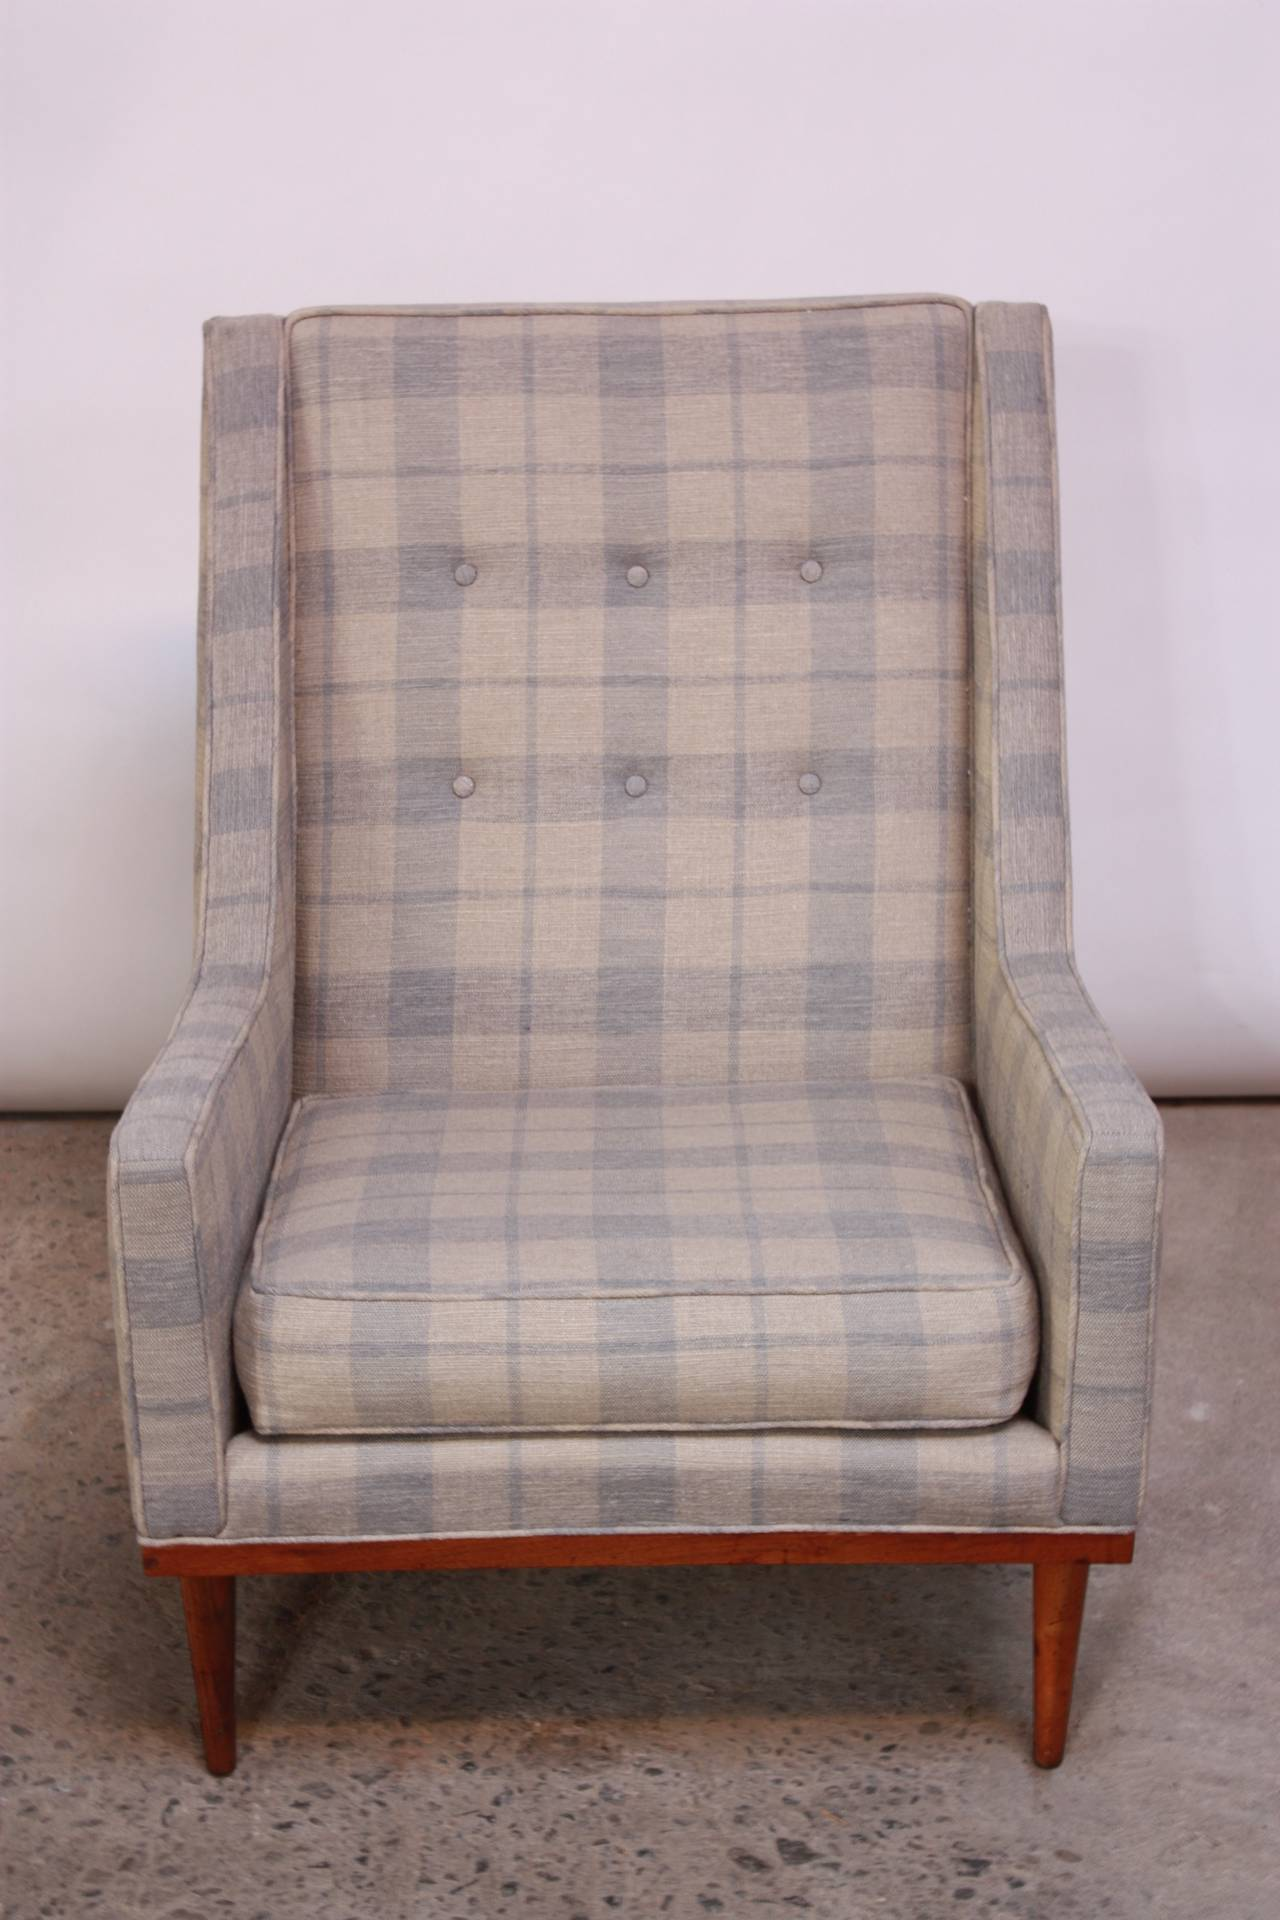 Milo Baughman for James Inc King Chair at 1stdibs